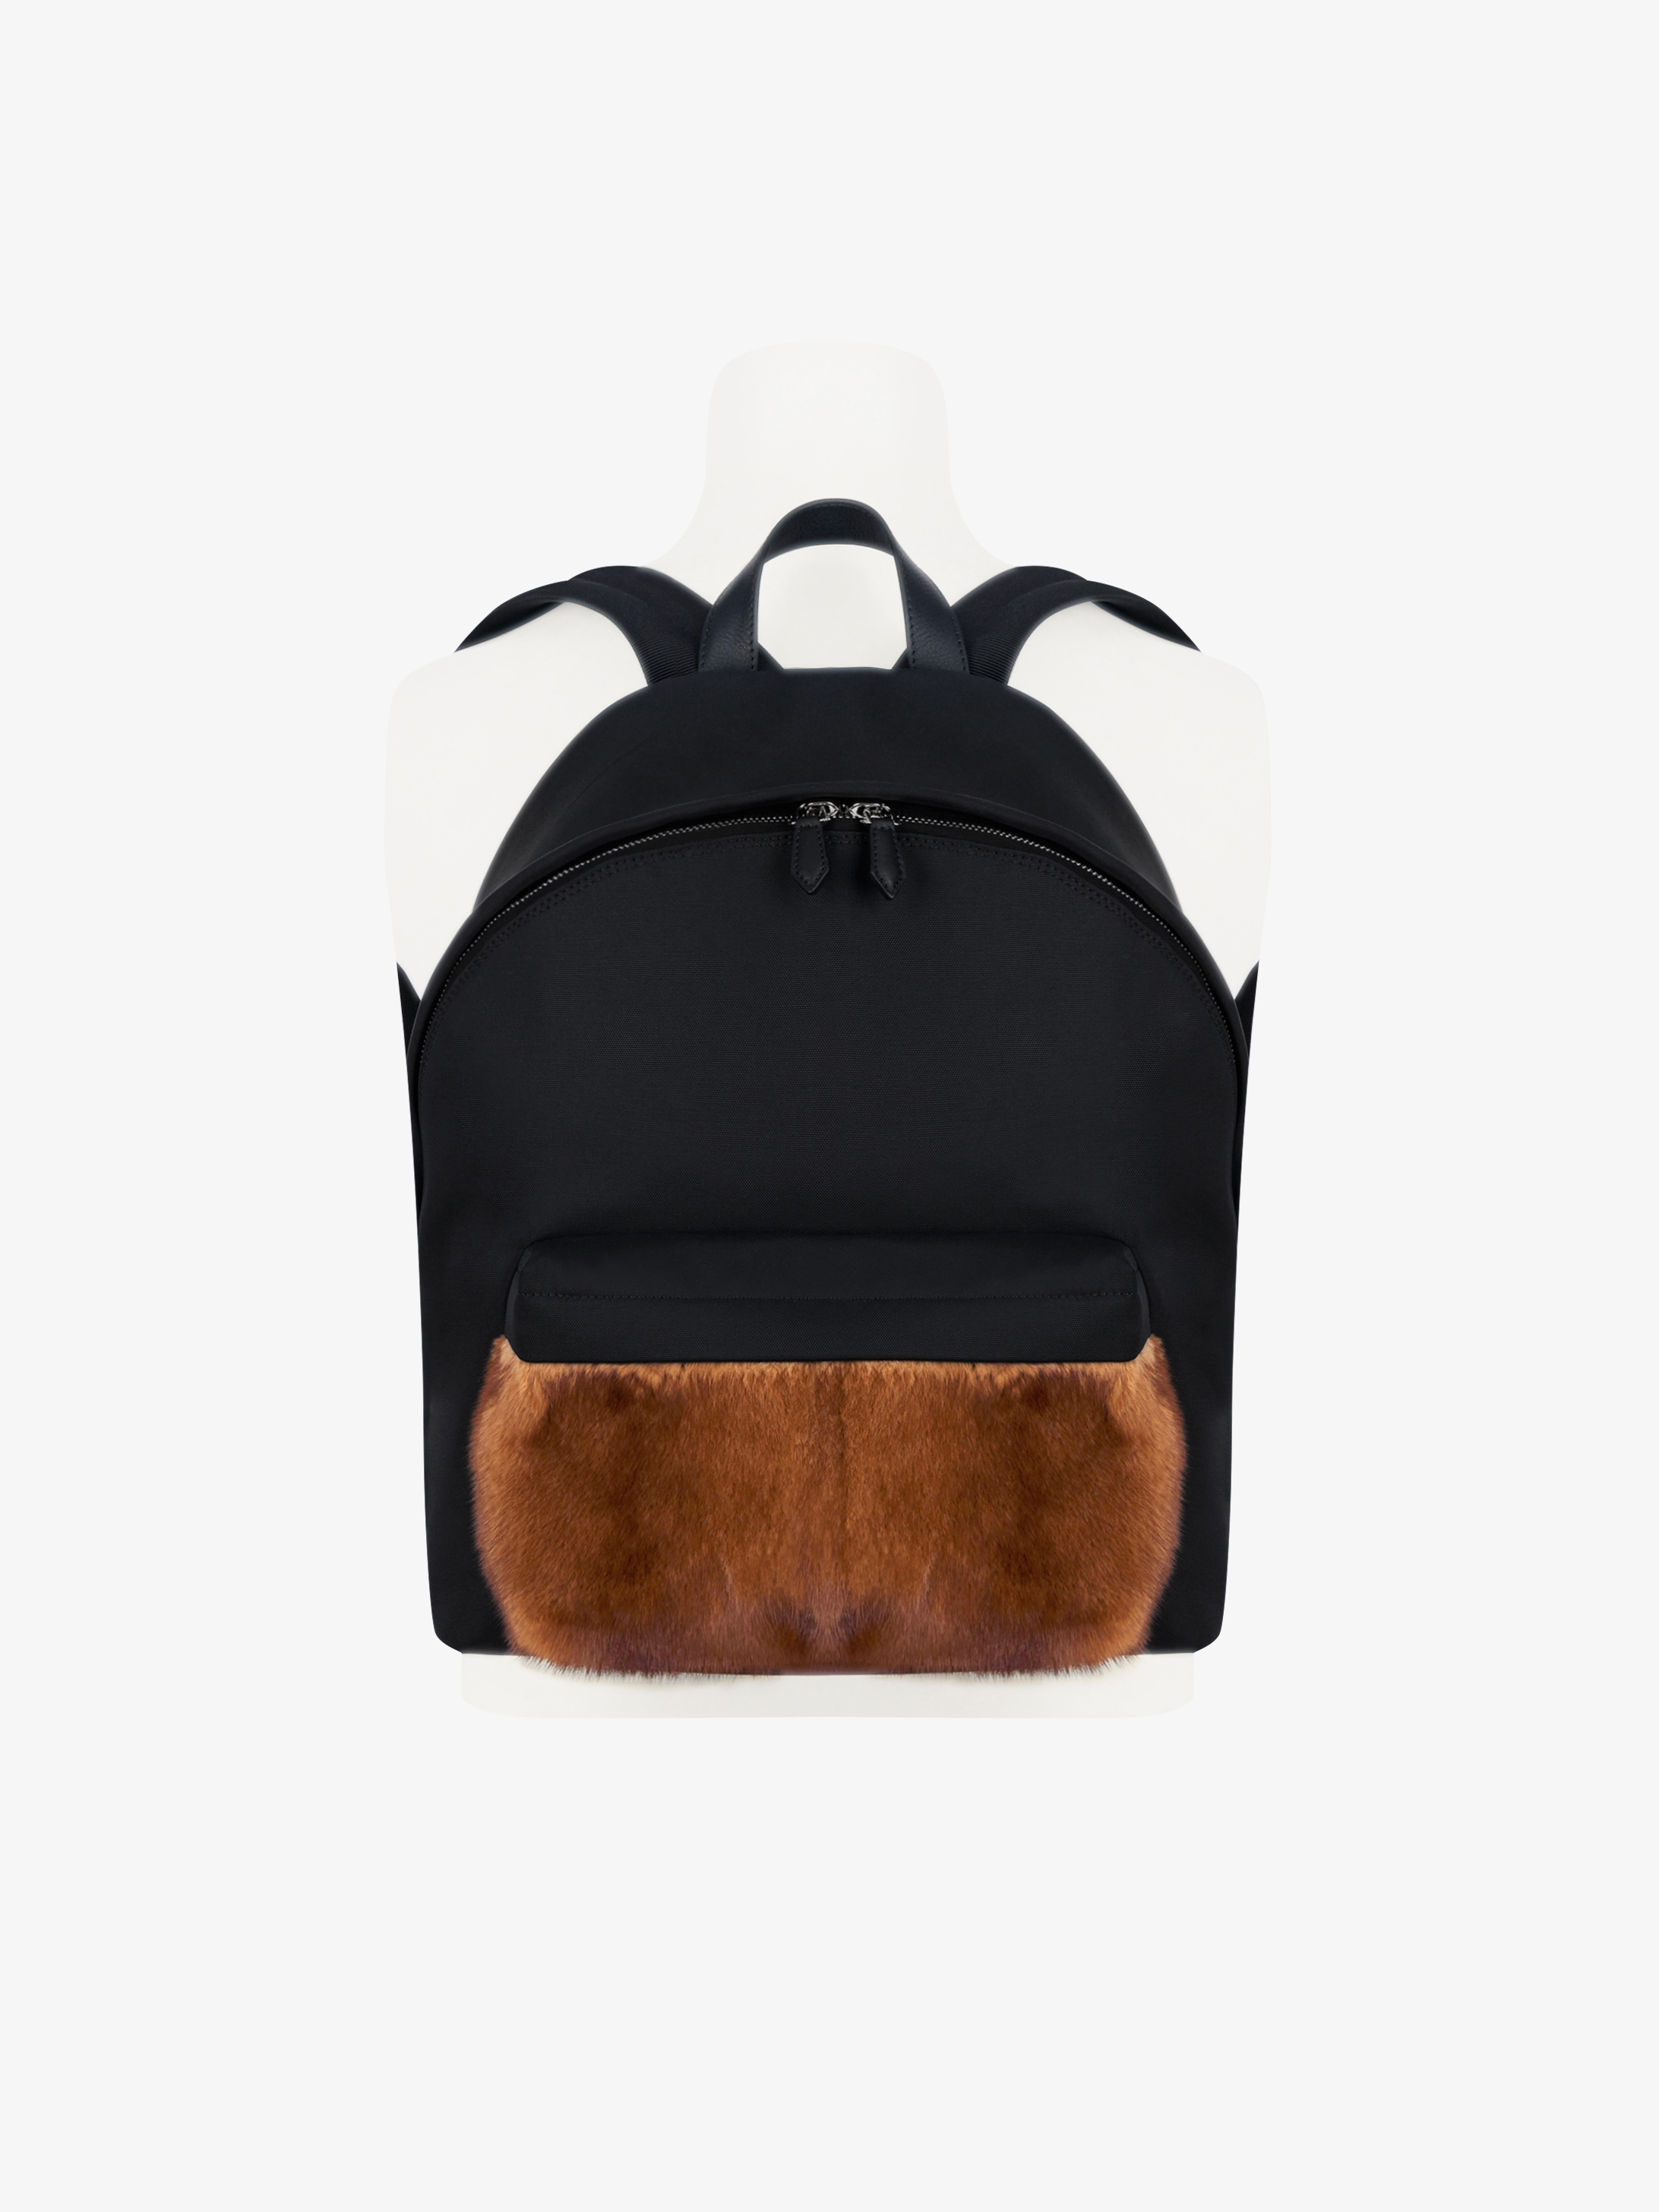 Mink and coated canvas backpack